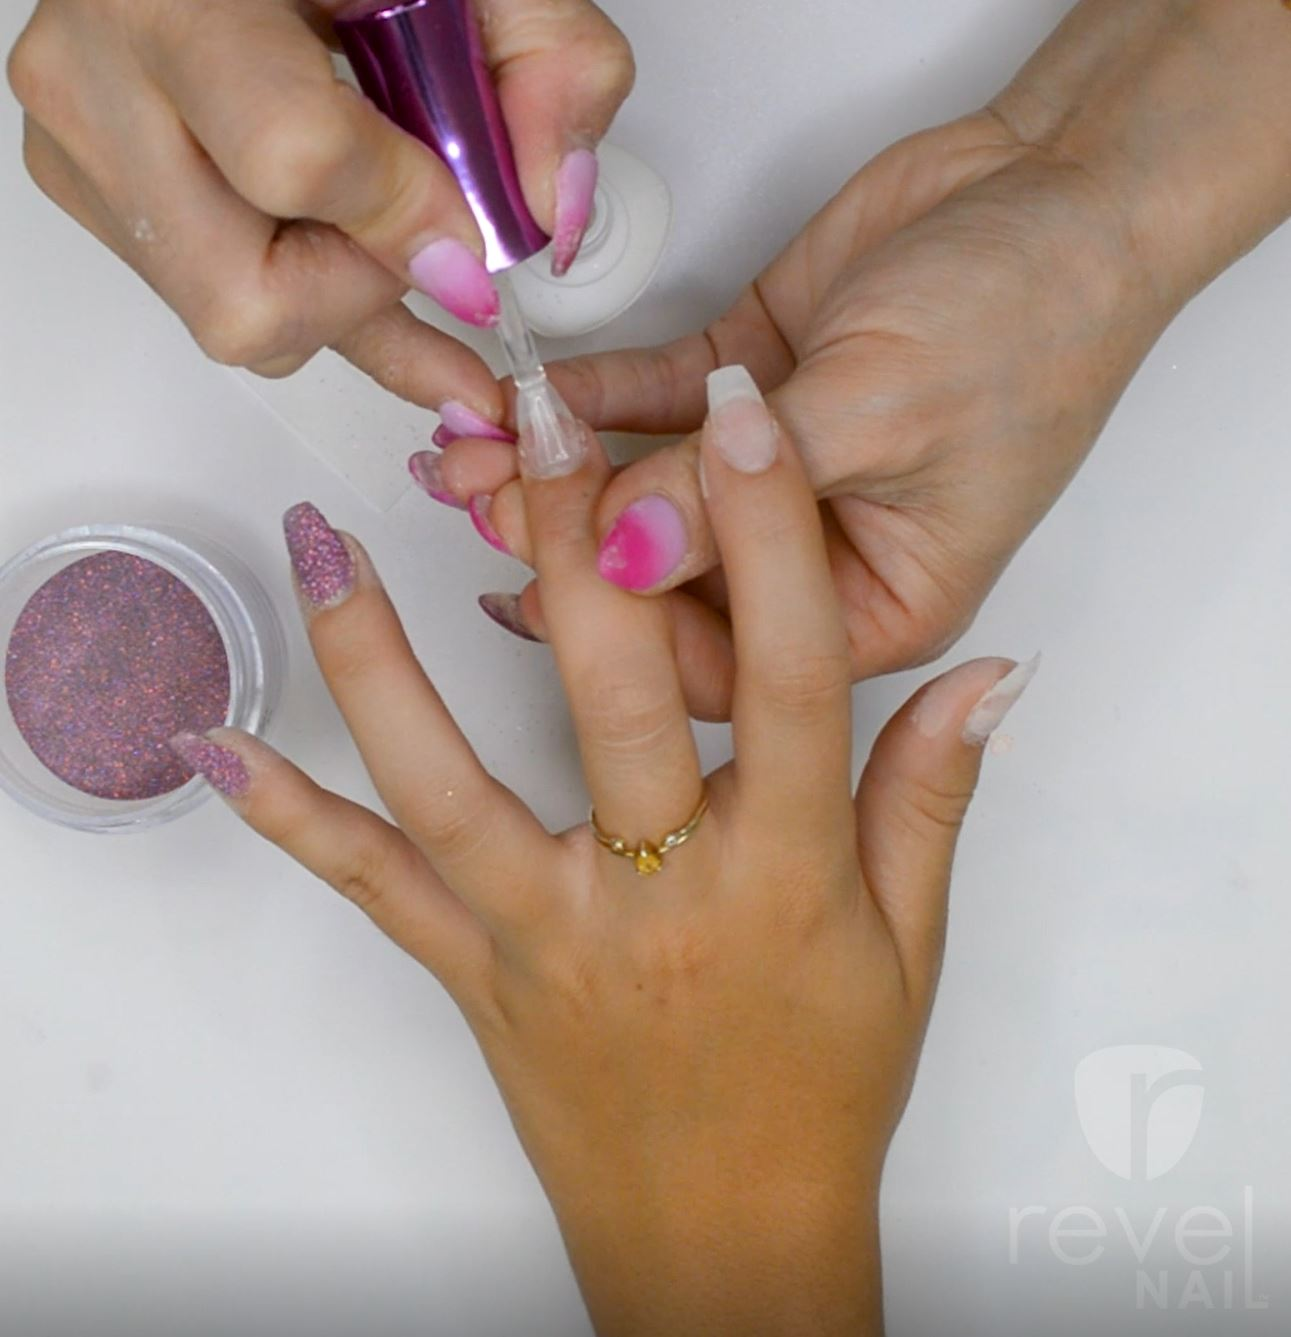 Photo of nail tech Applying Probase/revel nail dip powder